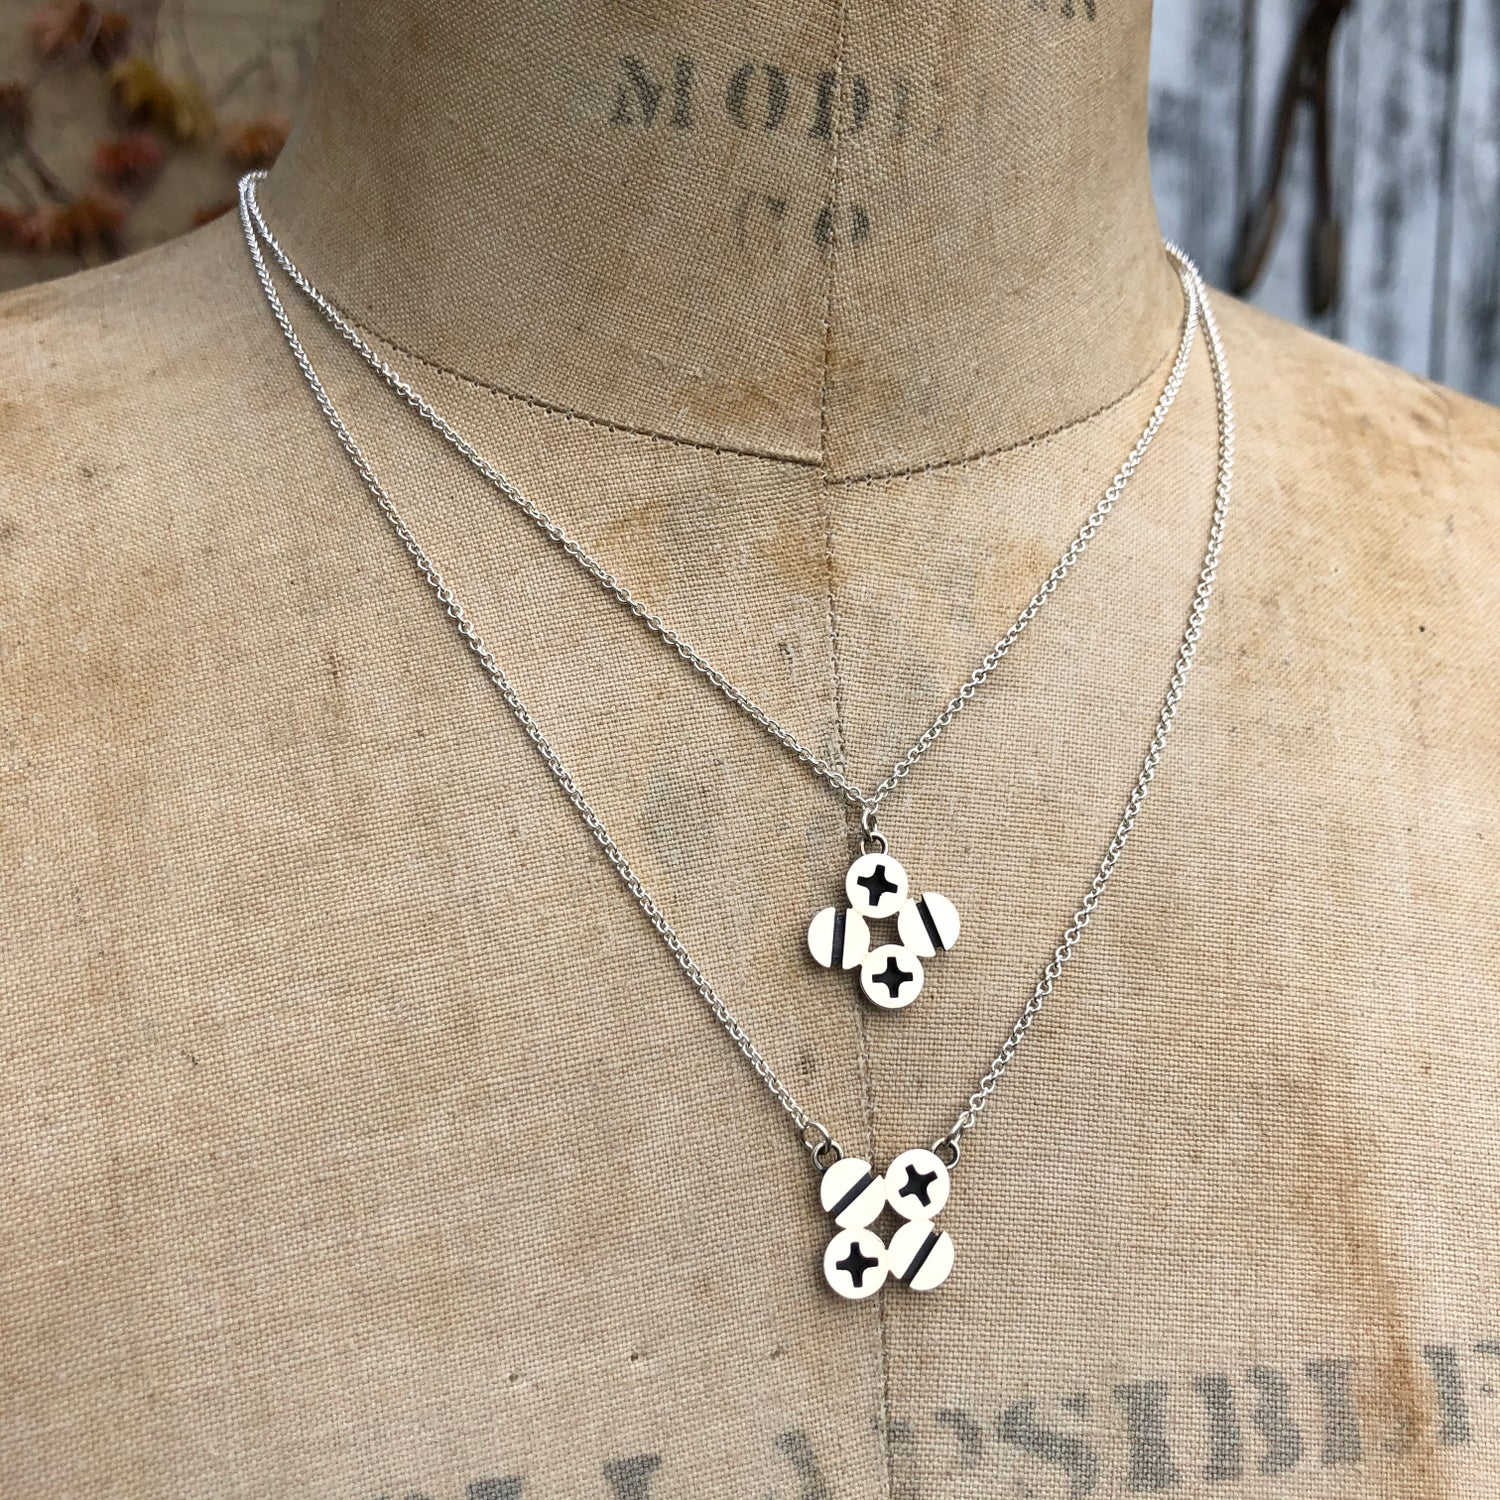 Image of Screws necklace